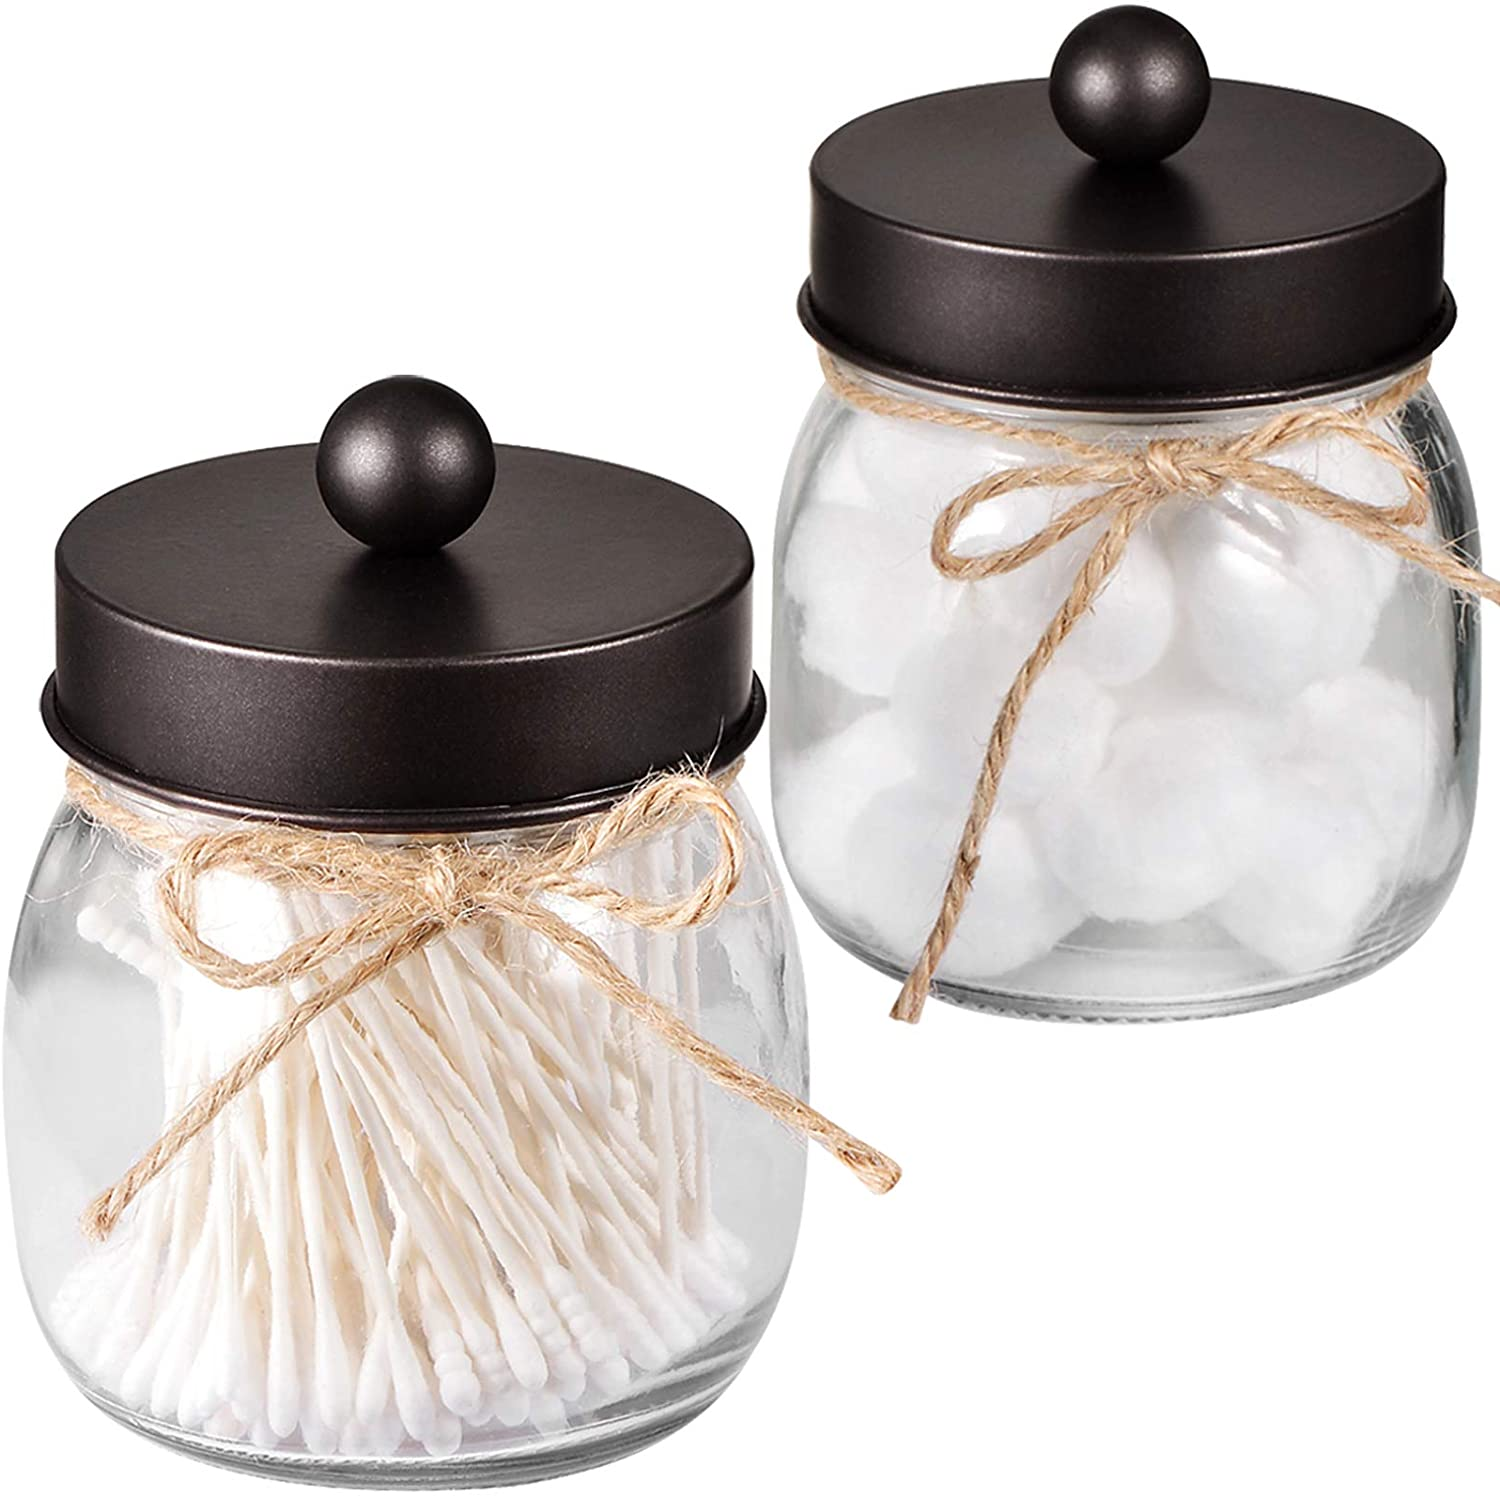 Amazon Com Mason Jar Bathroom Apothecary Jars Rustproof Stainless Steel Lid Farmhouse Decor Bathroom Vanity Storage Organizer Holder Glass For Cotton Swabs Rounds Ball Flossers Bronze 2 Pack Patent Pending Home Kitchen